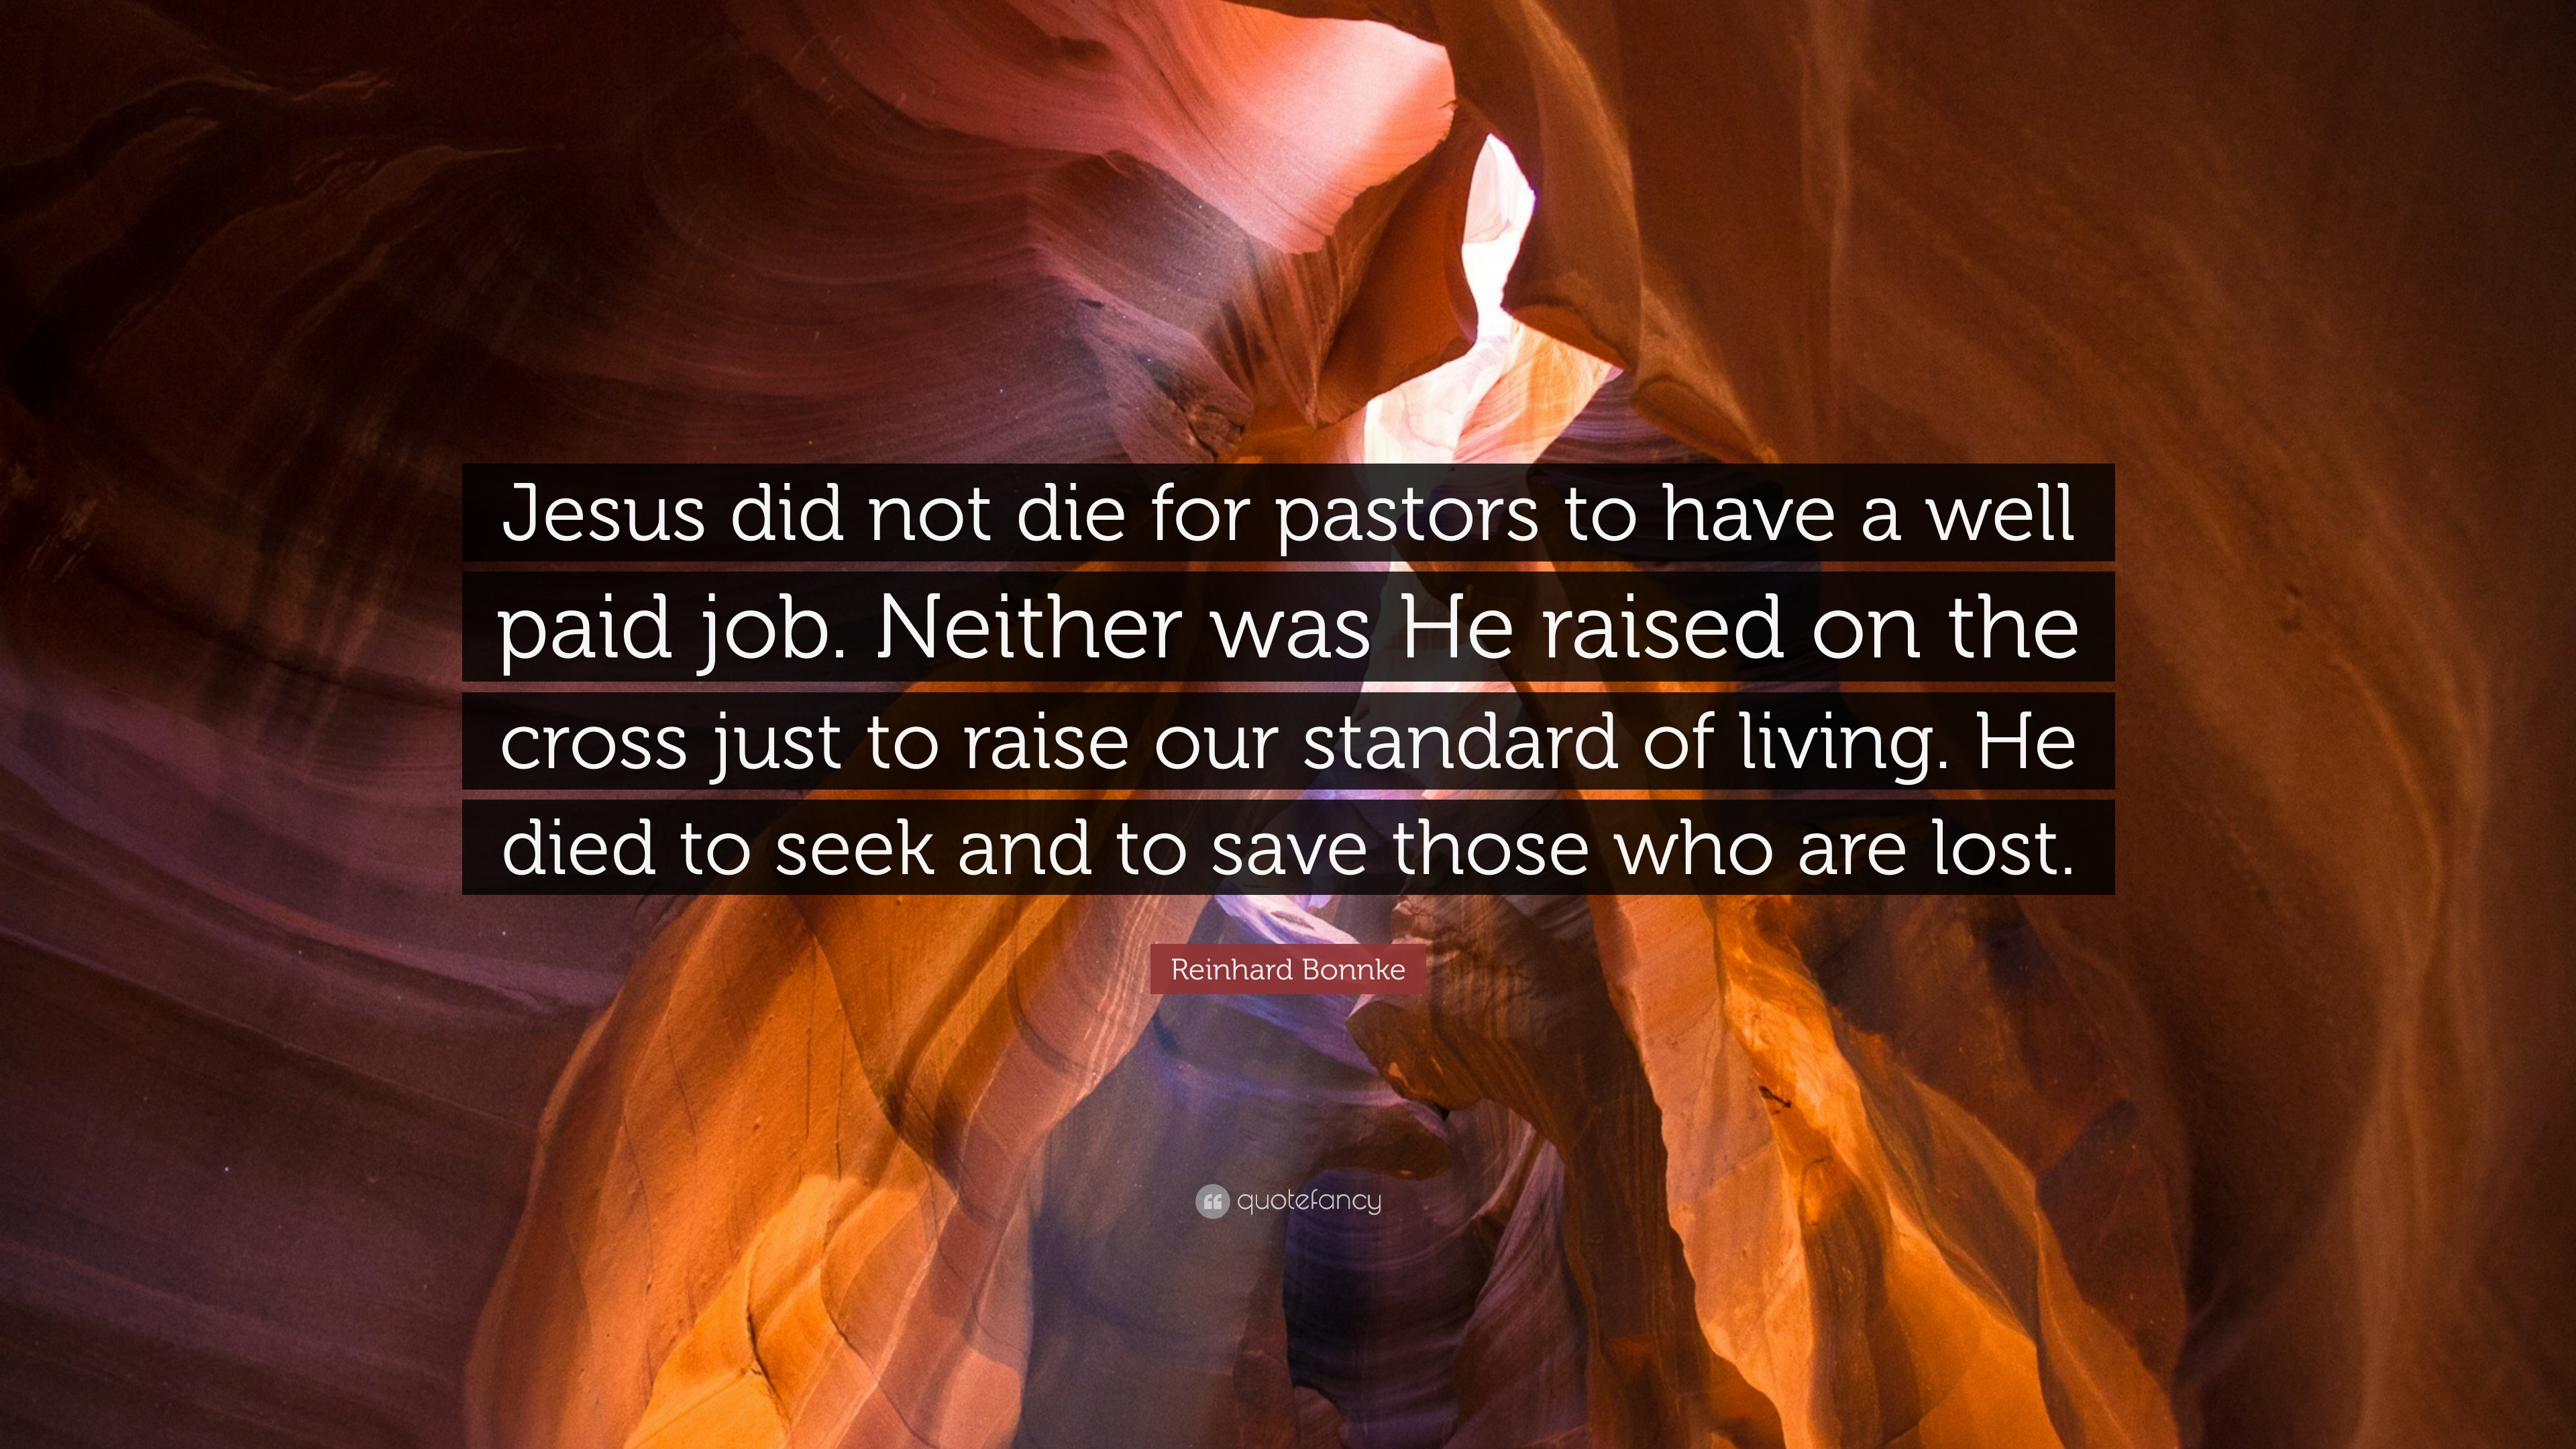 Reinhard bonnke quote jesus did not die for pastors to have a well reinhard bonnke quote jesus did not die for pastors to have a well paid altavistaventures Image collections